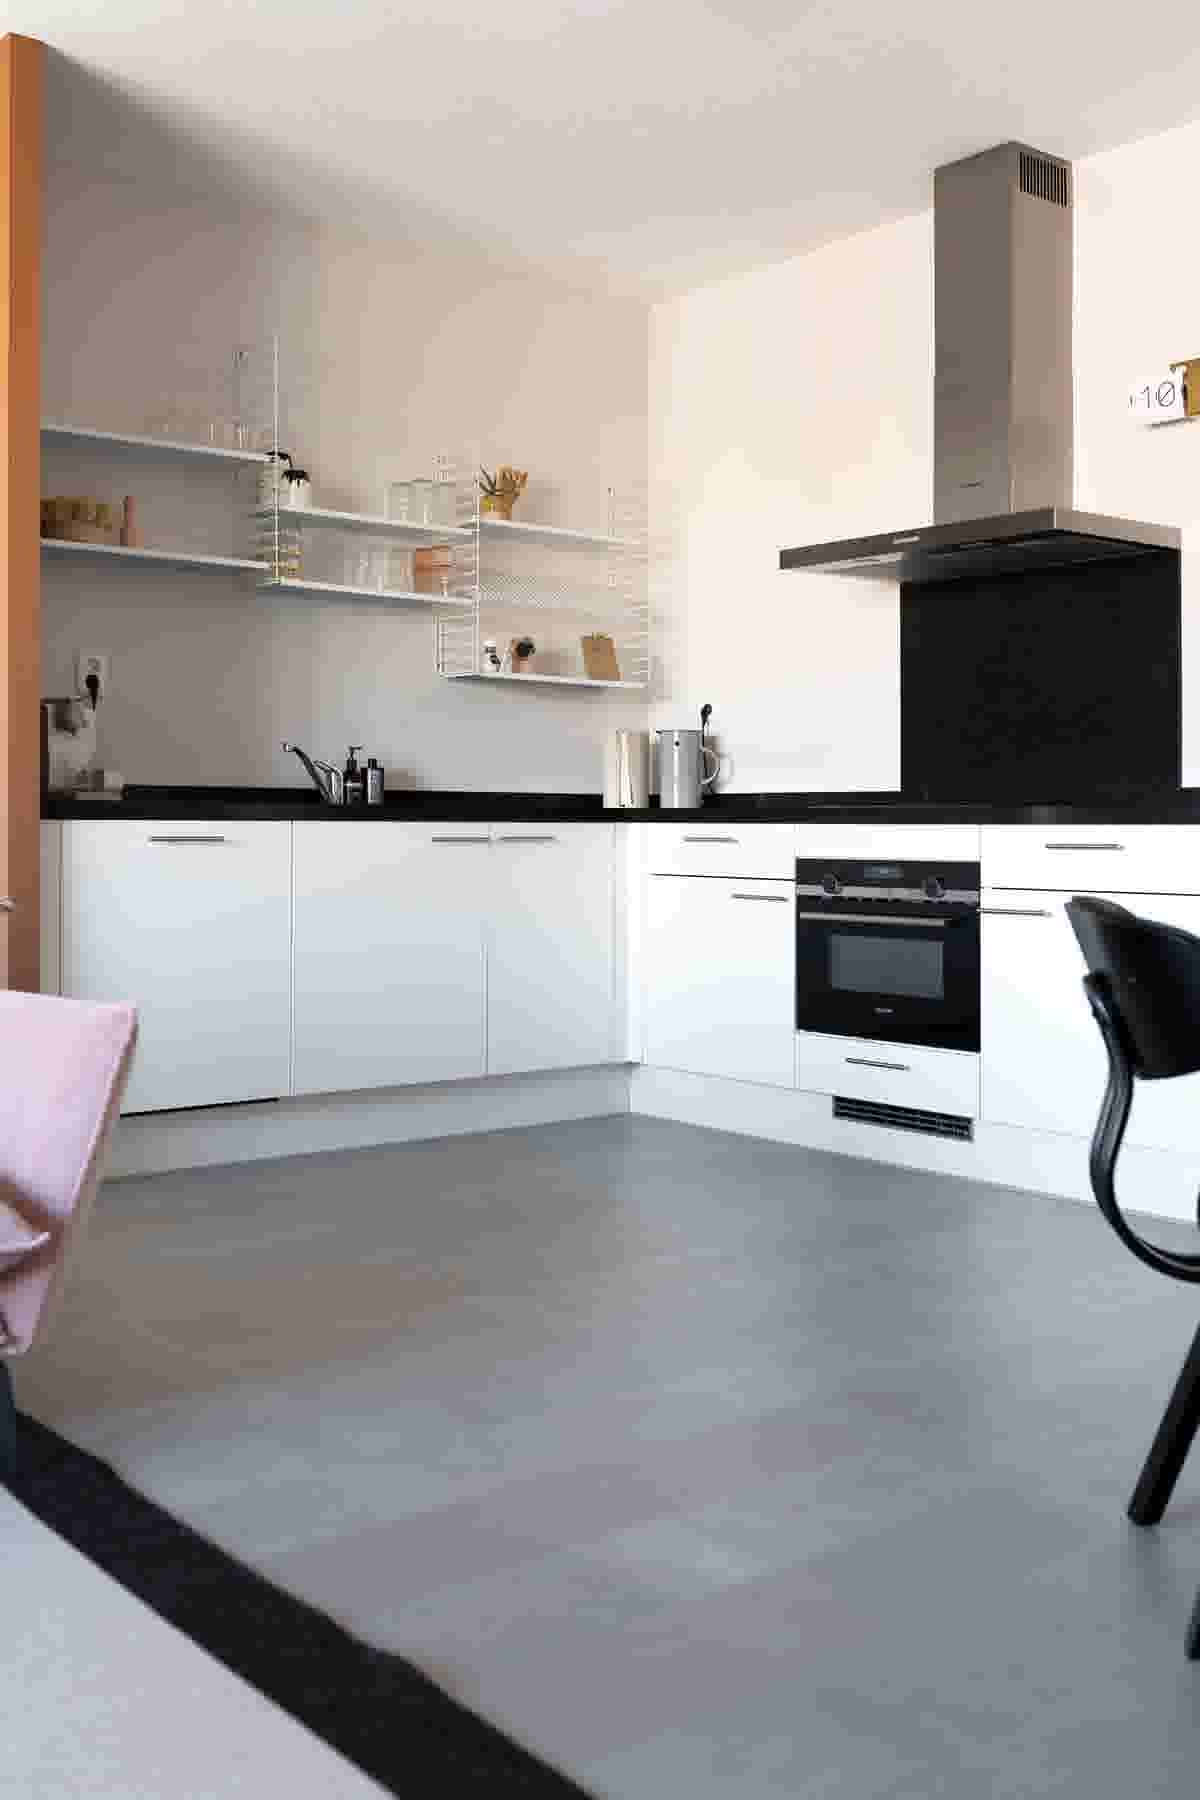 Keuken make-over: opknappen en stylen